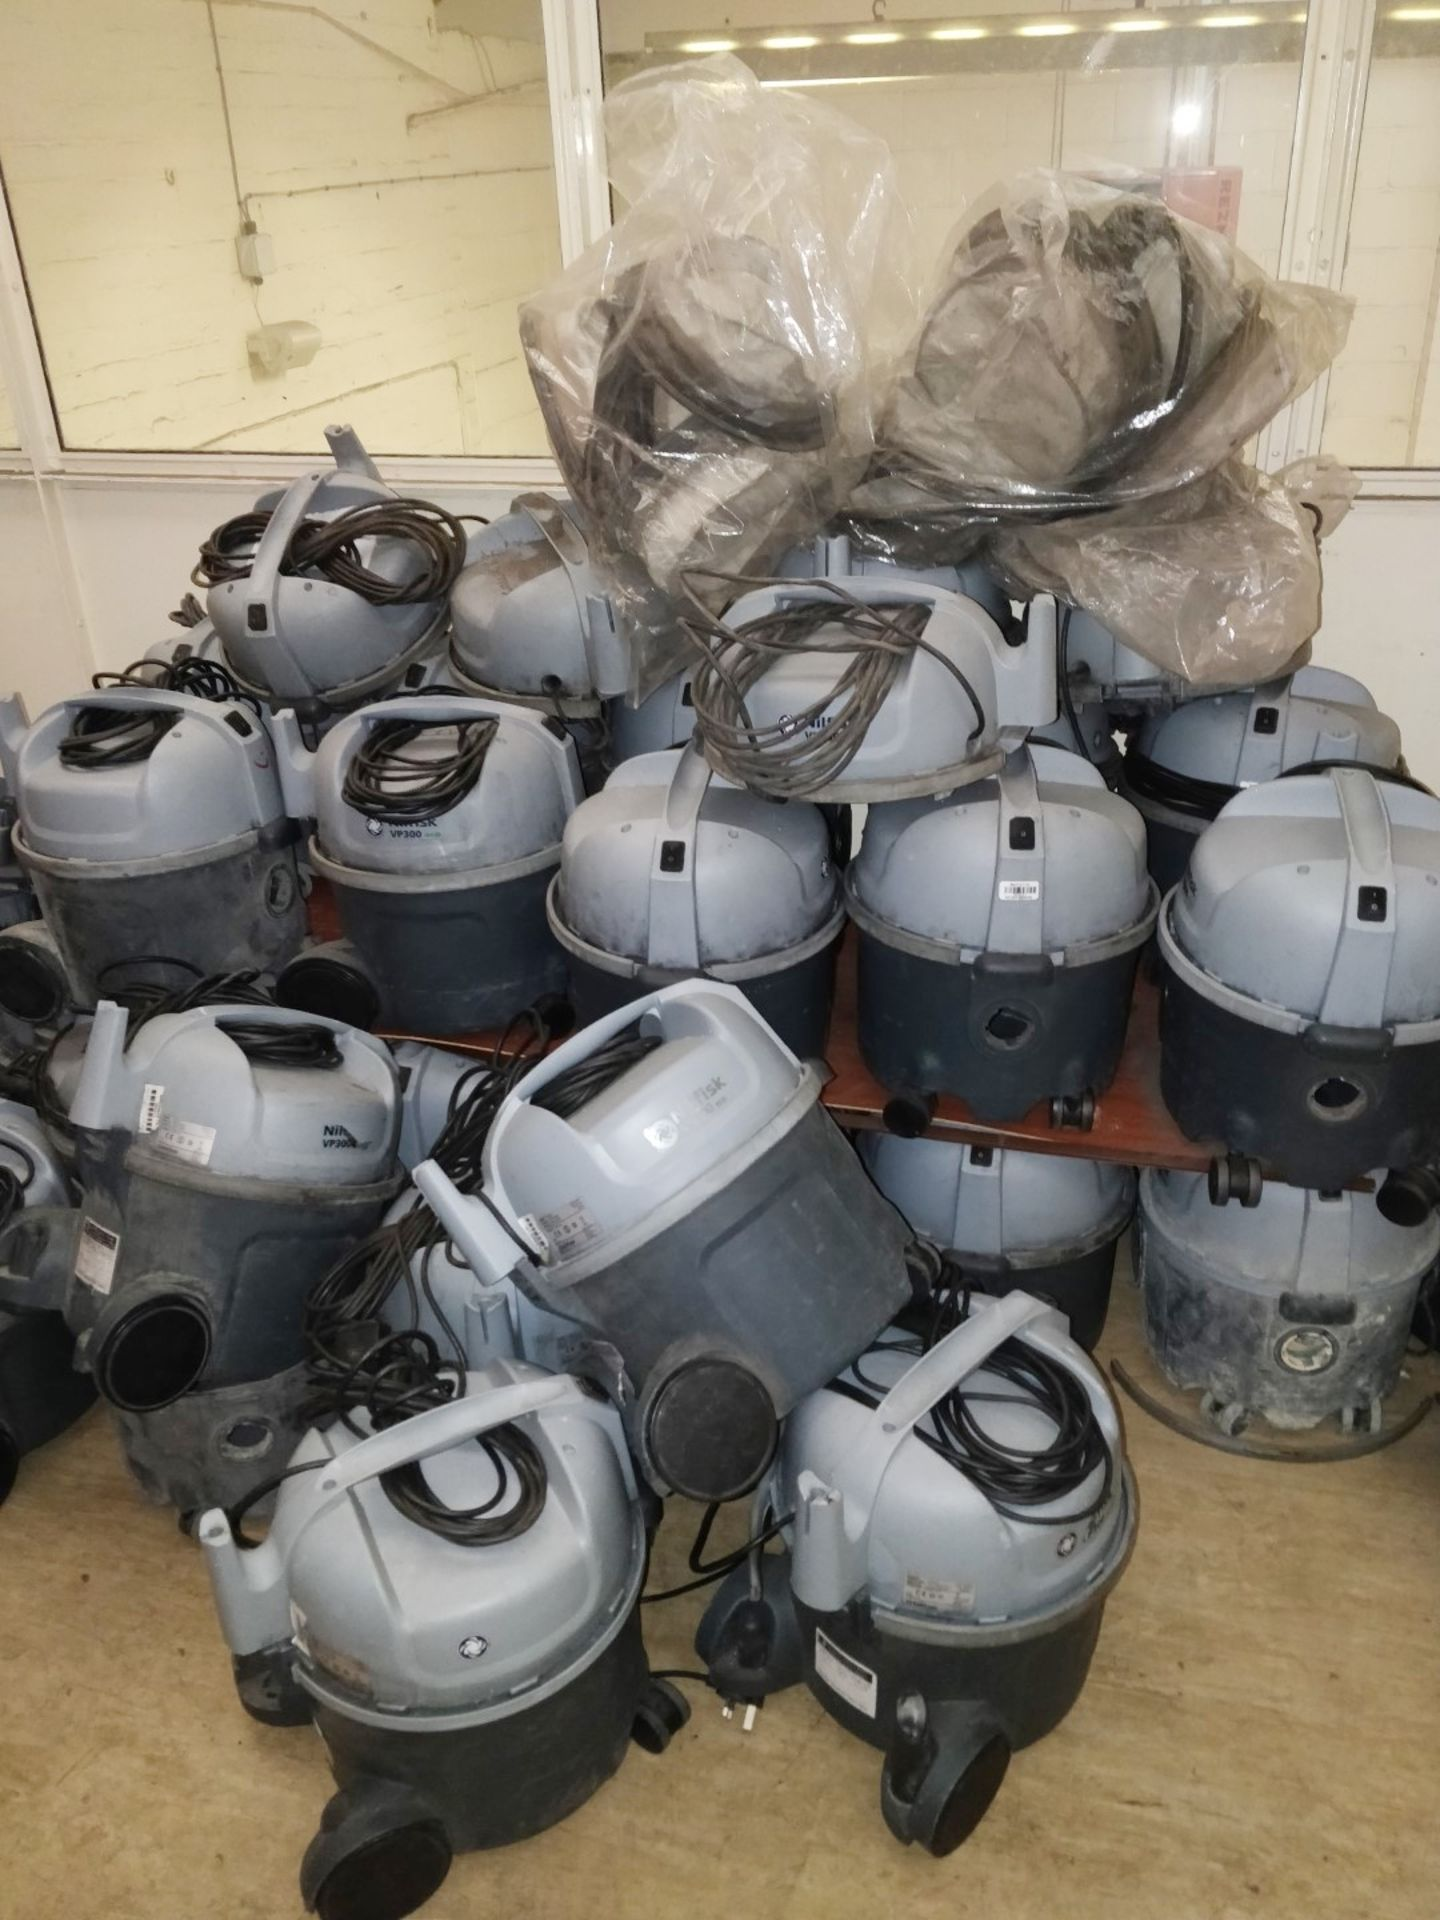 Lot 5 - 30 x Nilfrisk VP300 Eco Vacuum Cleaners - Approx RRP £3,000 - Ref B2 CL409 - Location: Wakefield